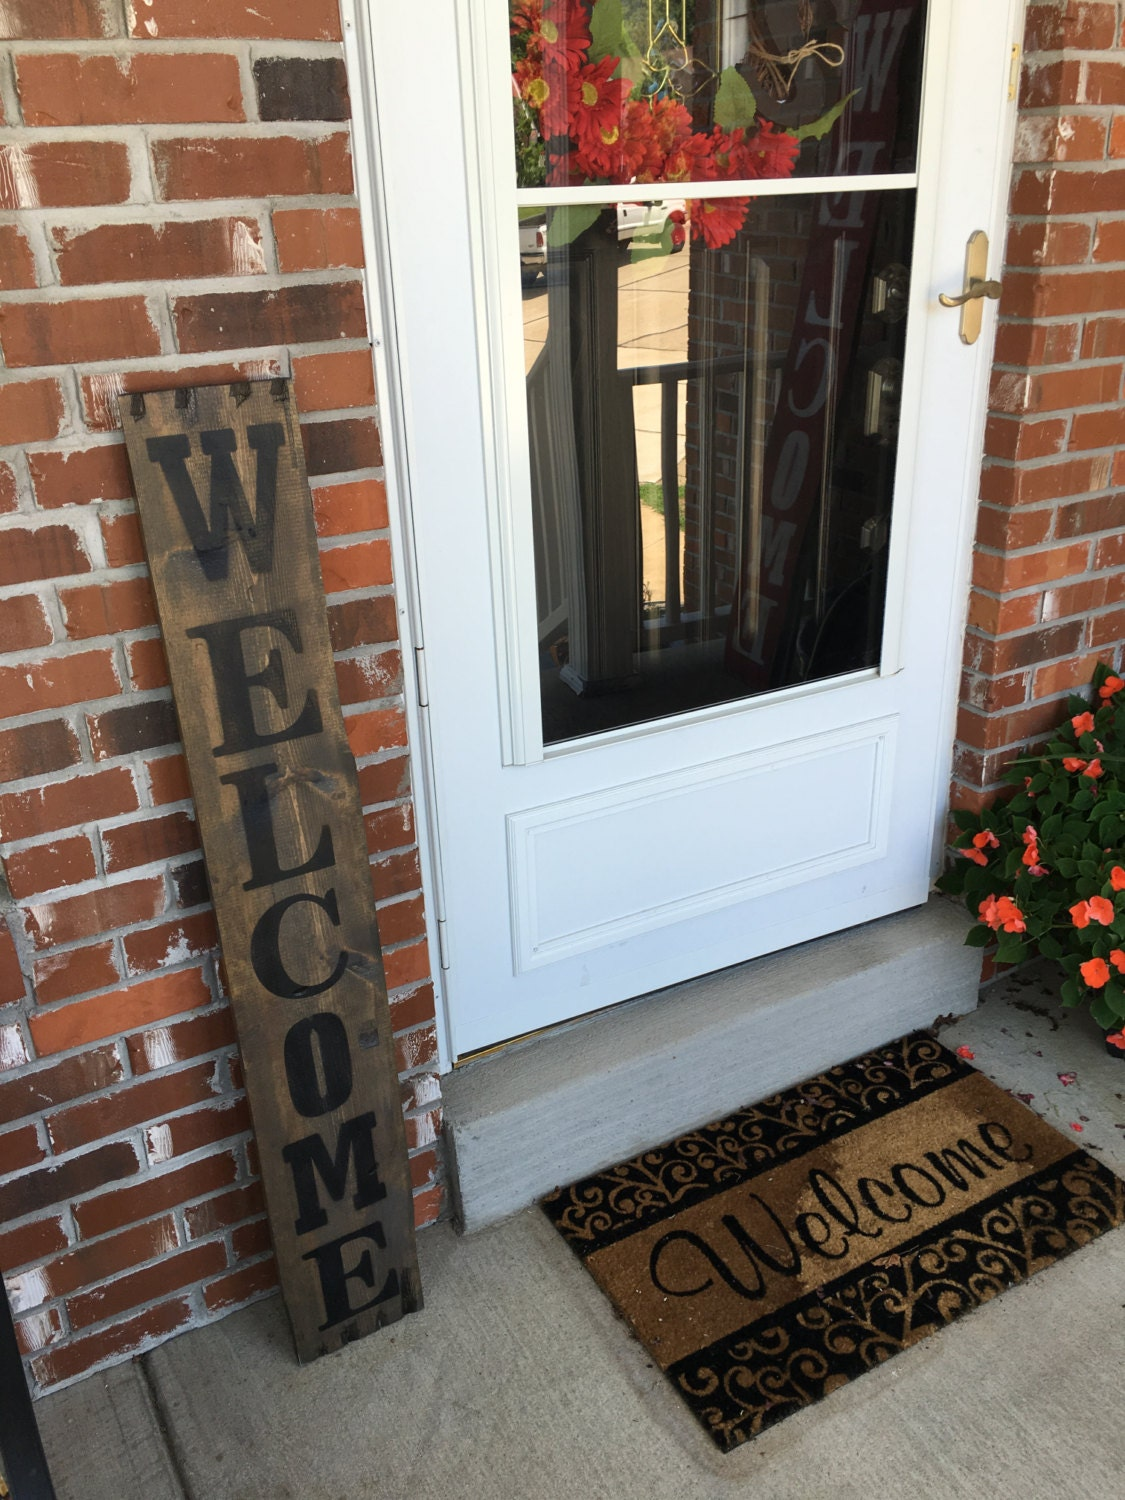 Large welcome signs rustic wood welcome signs welcome porch large welcome signs rustic wood welcome signs welcome porch signs front porch decor rustic welcome signs front porch wood welcome signs rubansaba